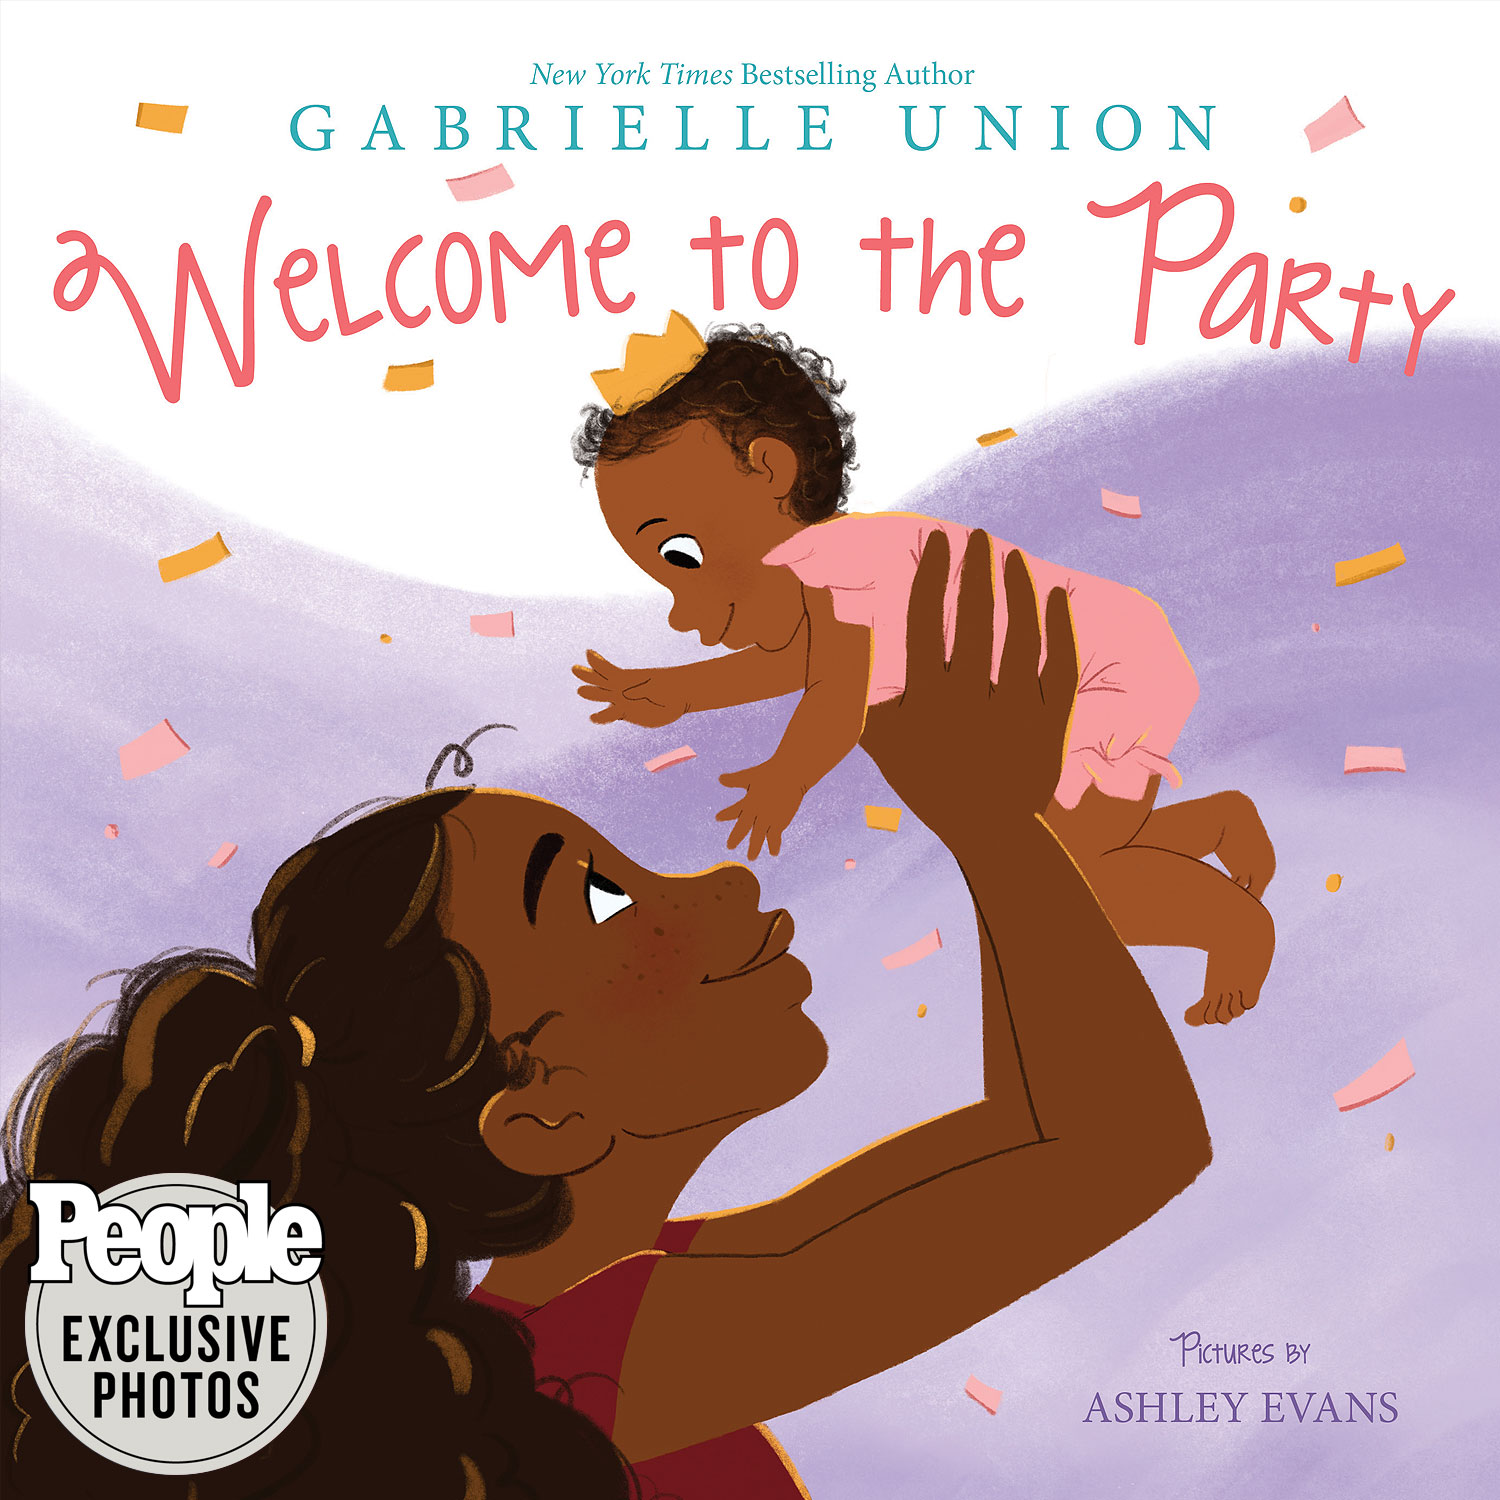 Gabrielle Union Welcome to the Party